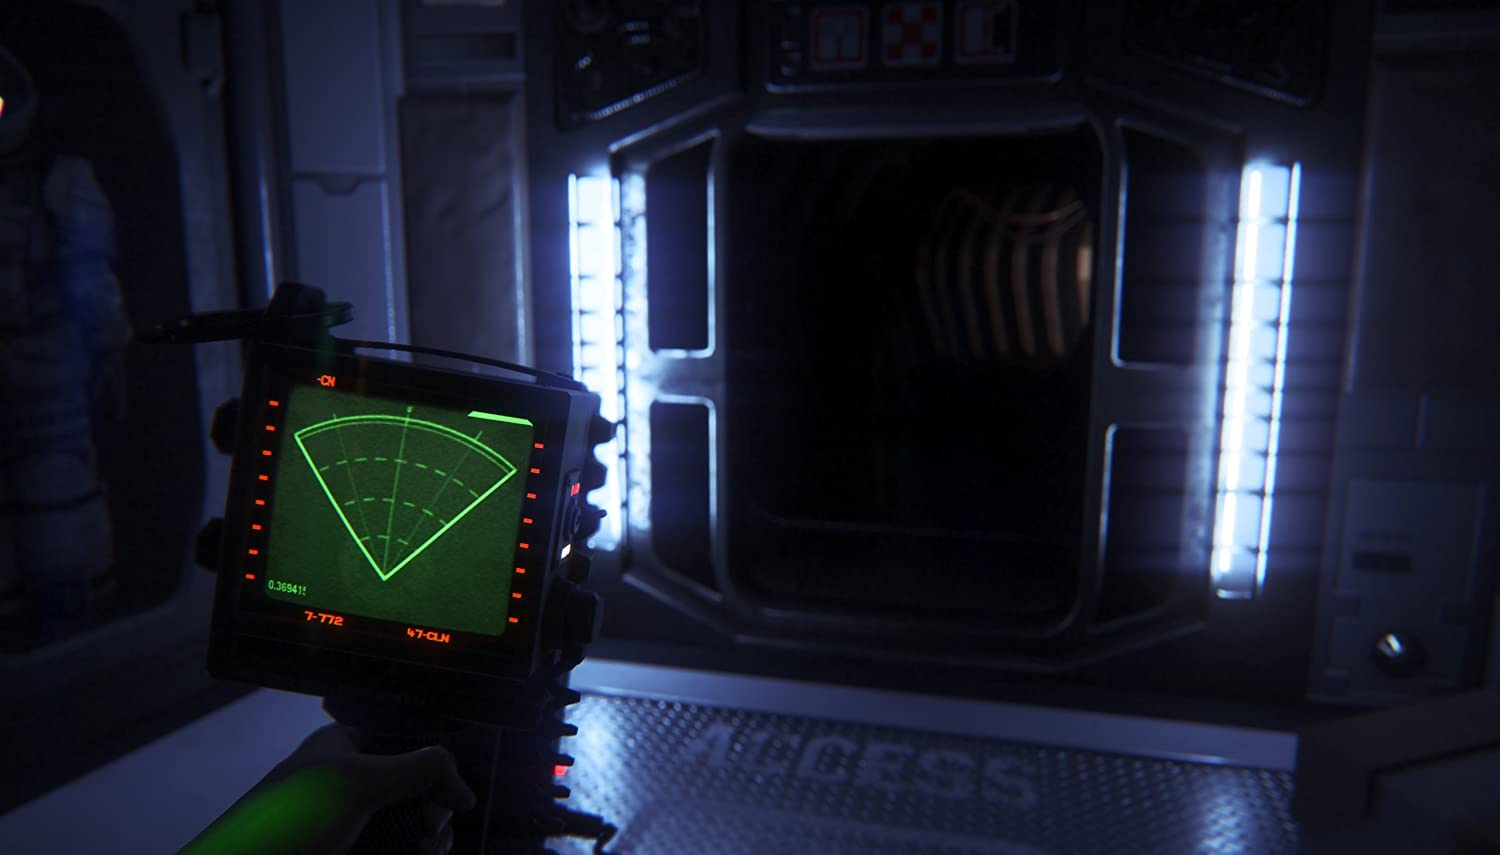 SEGA Alien Isolation: Nostromo Edition, PS3 Básico PlayStation 3 Francés vídeo - Juego (PS3, PlayStation 3, FPS (Disparos en primera persona)): Amazon.es: Videojuegos